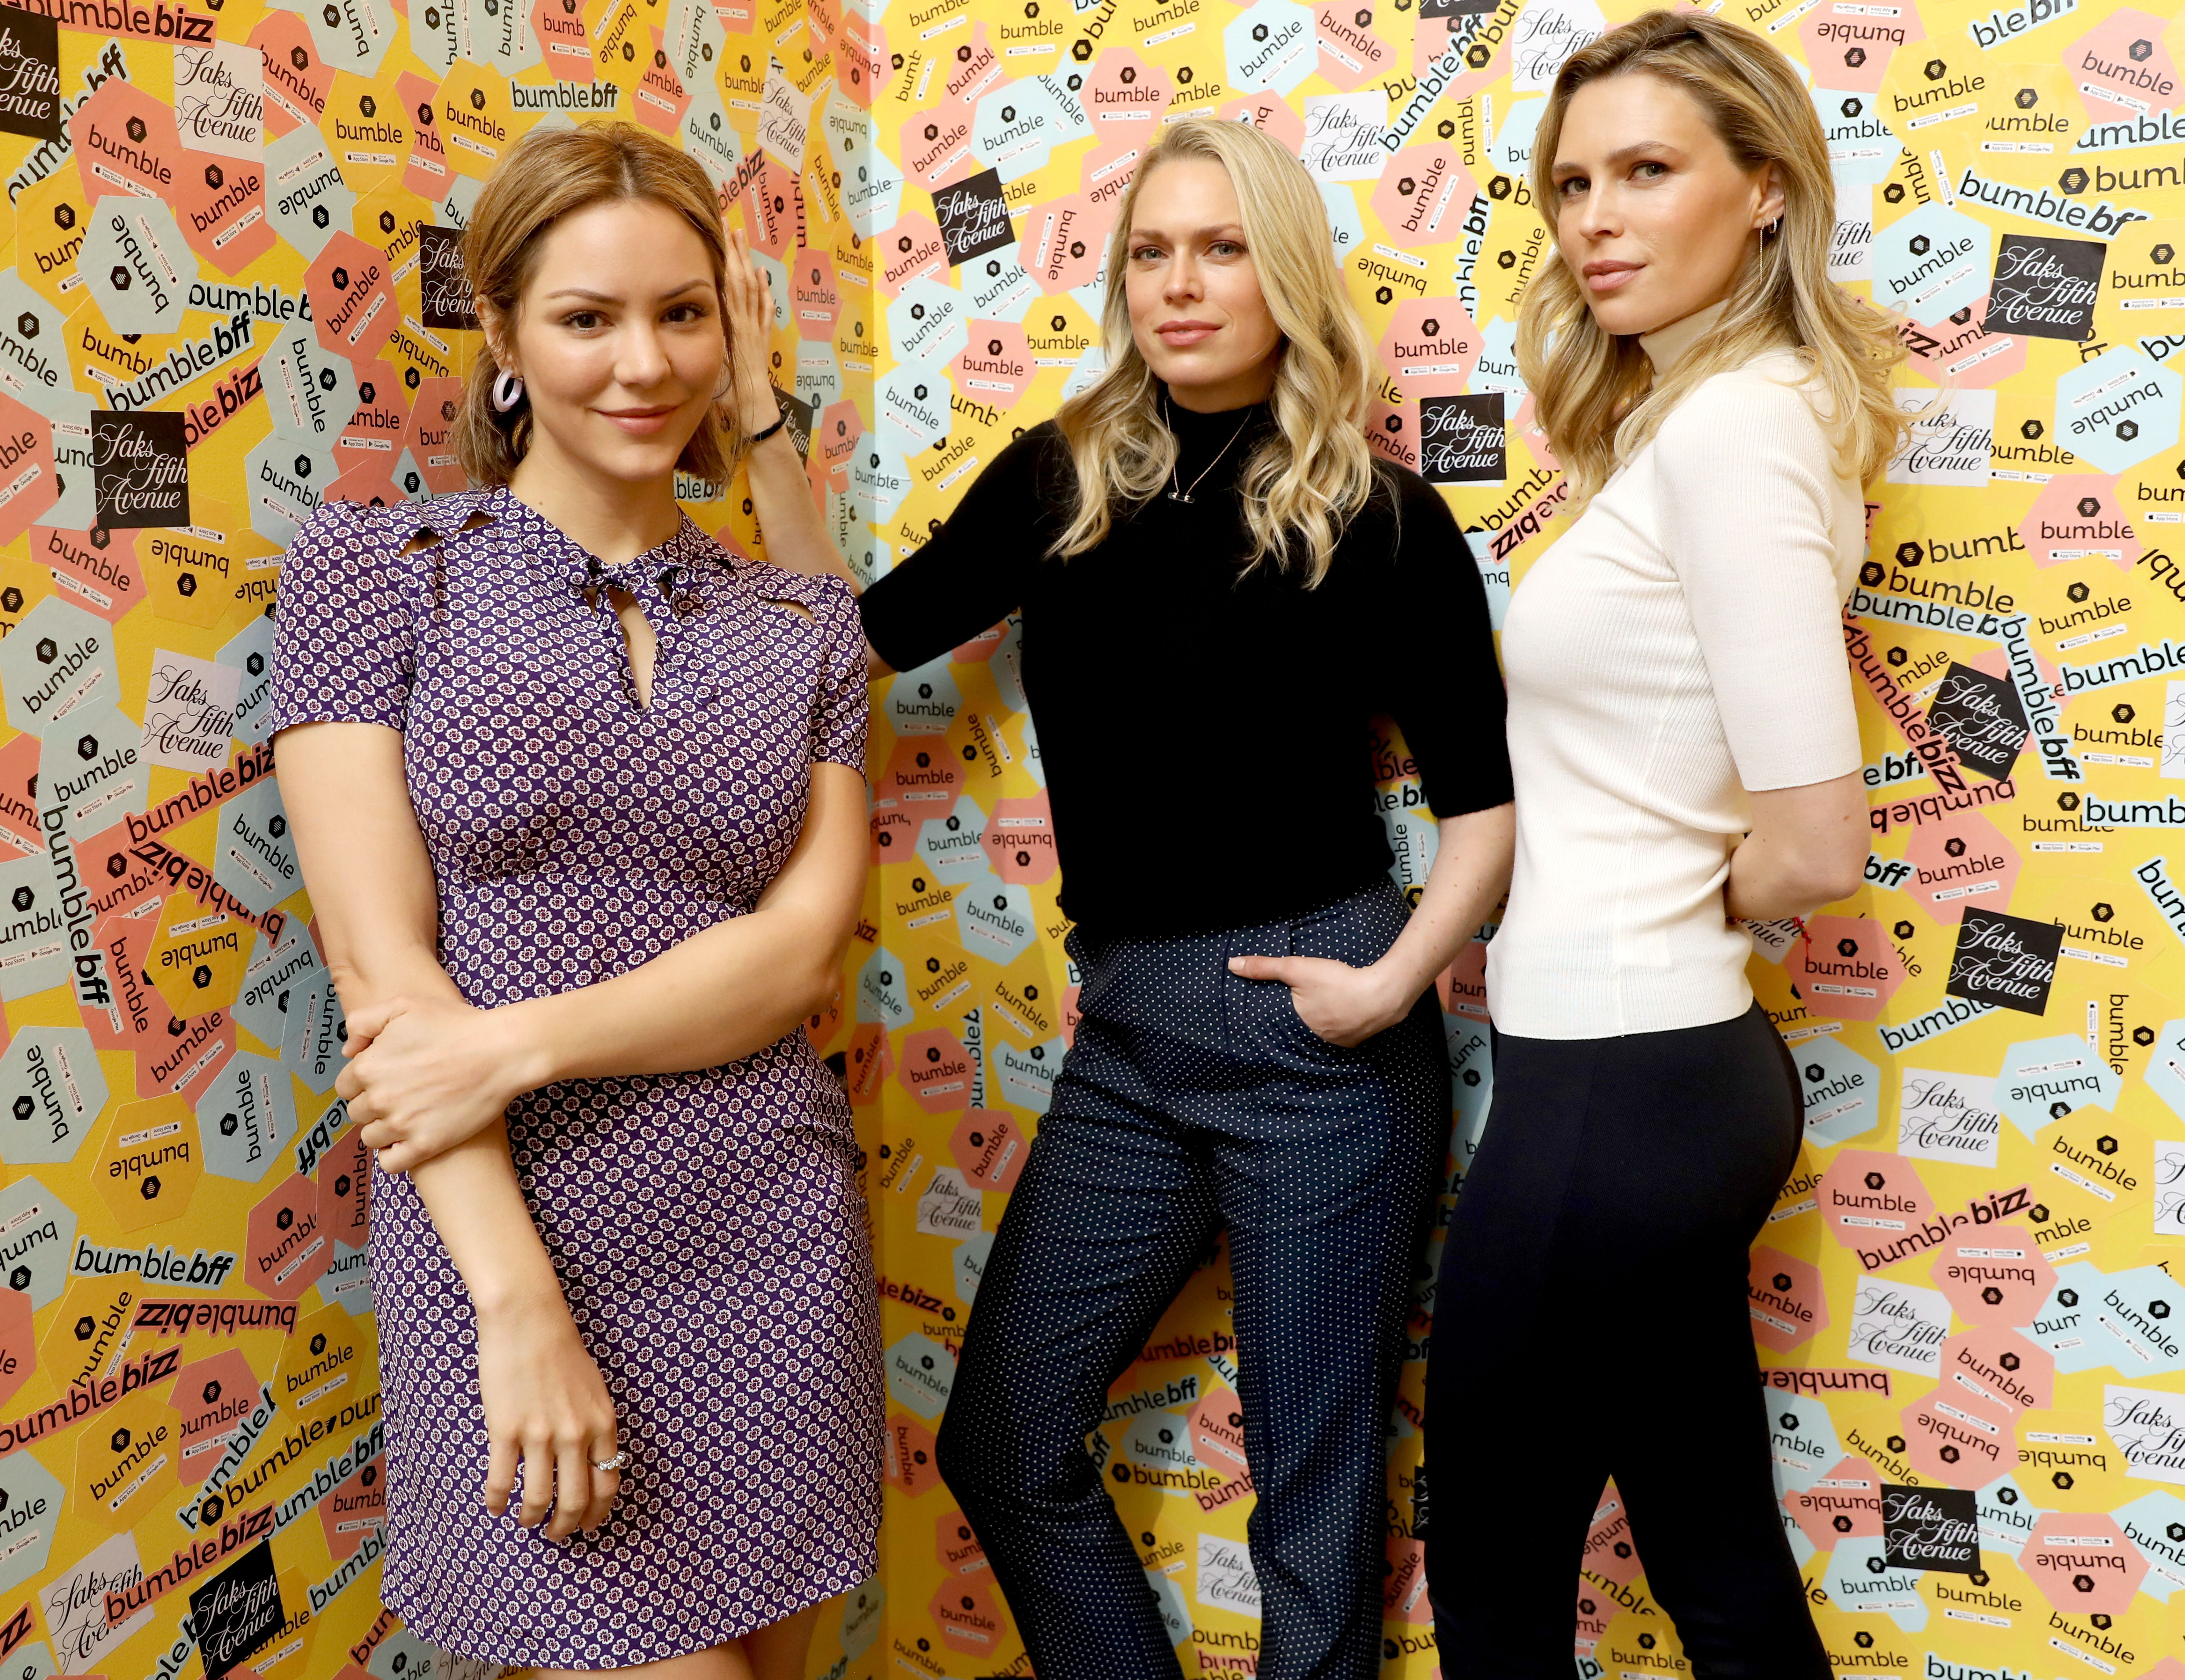 Erin and Sara Foster Talk Katharine McPhee's Confidence-1 - Katharine McPhee, Erin Foster, and Sara Foster attend a panel discussion on power dressing with Bumble's Sara & Erin Foster and designer Andrea Lieberman hosted by Saks at Saks Fifth Avenue on May 18, 2018 in New York City.